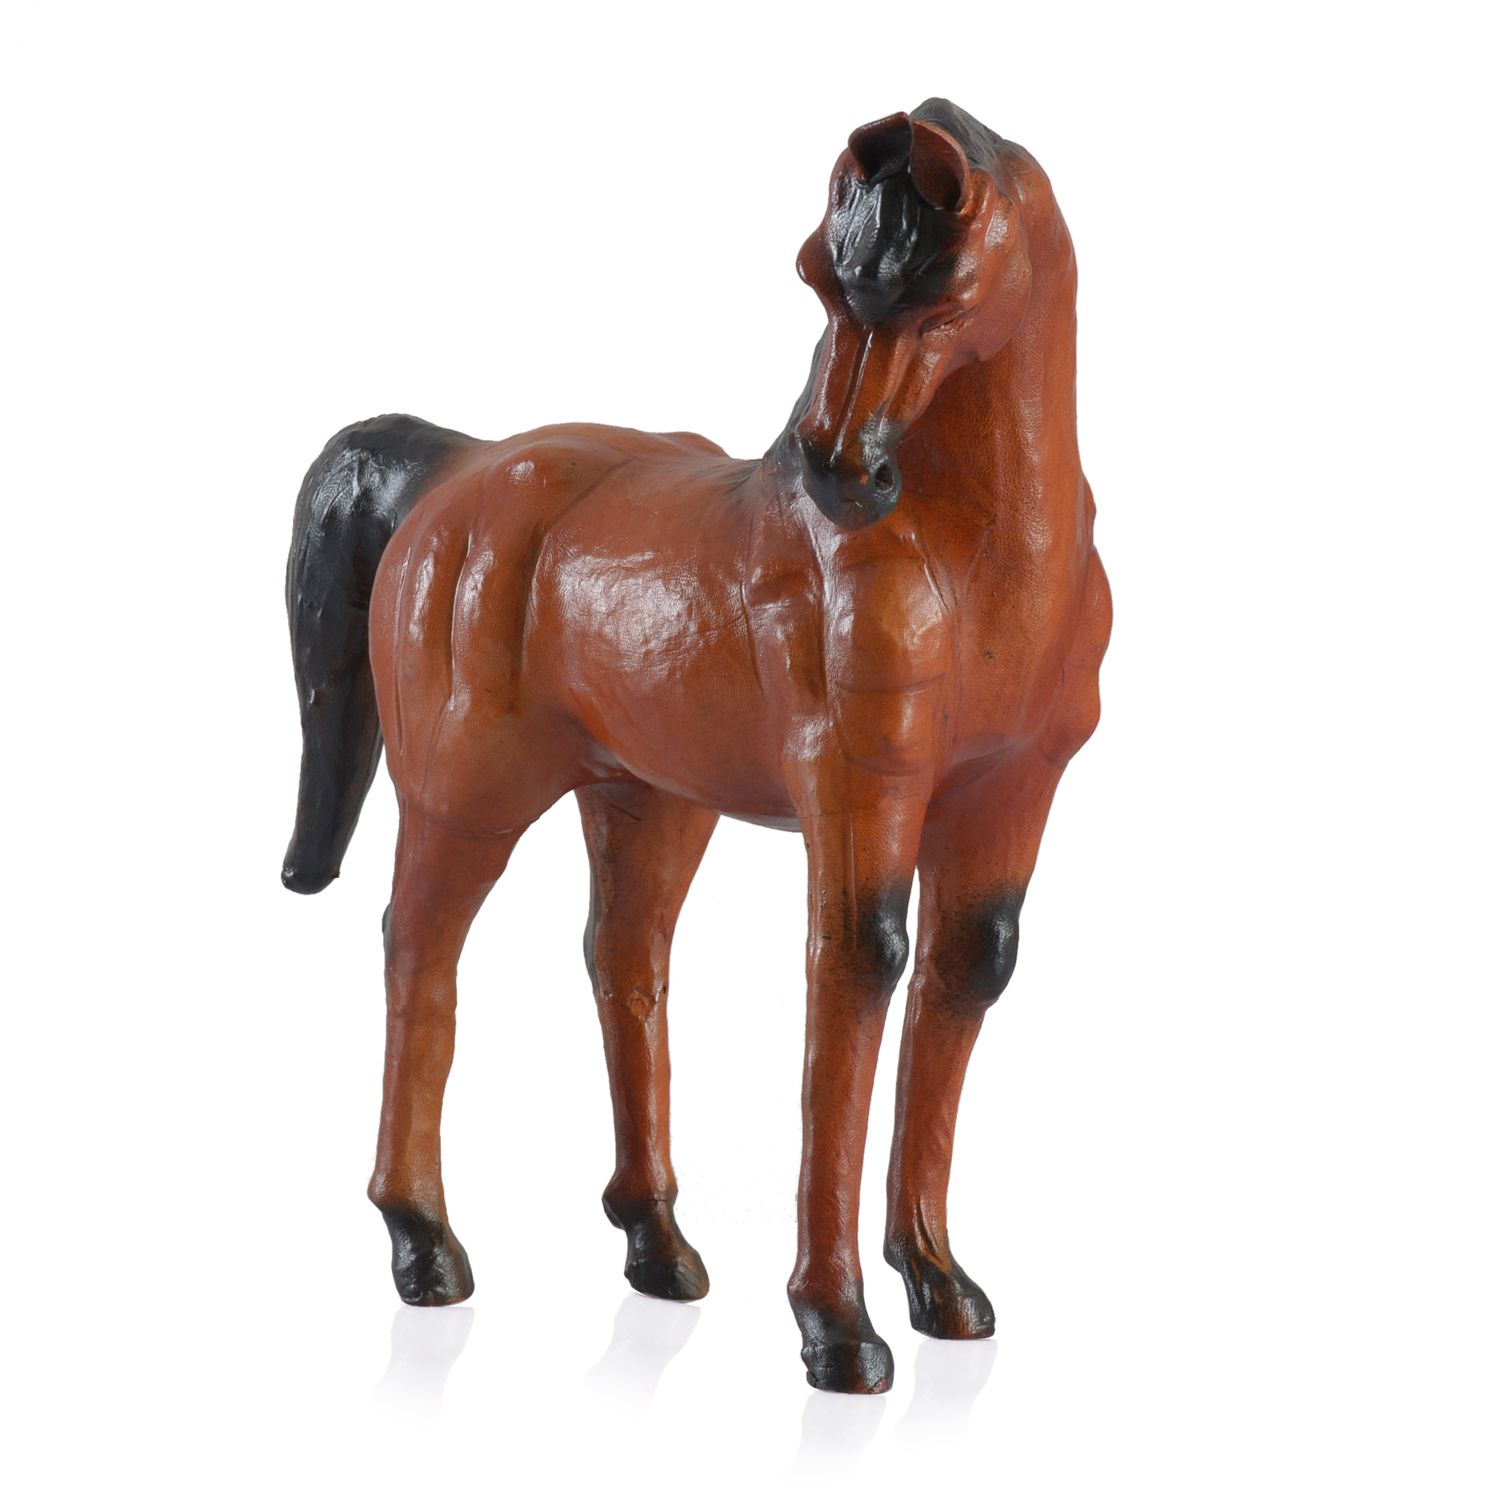 Decorative Walking Bay Leather Horse Statue Table Decor